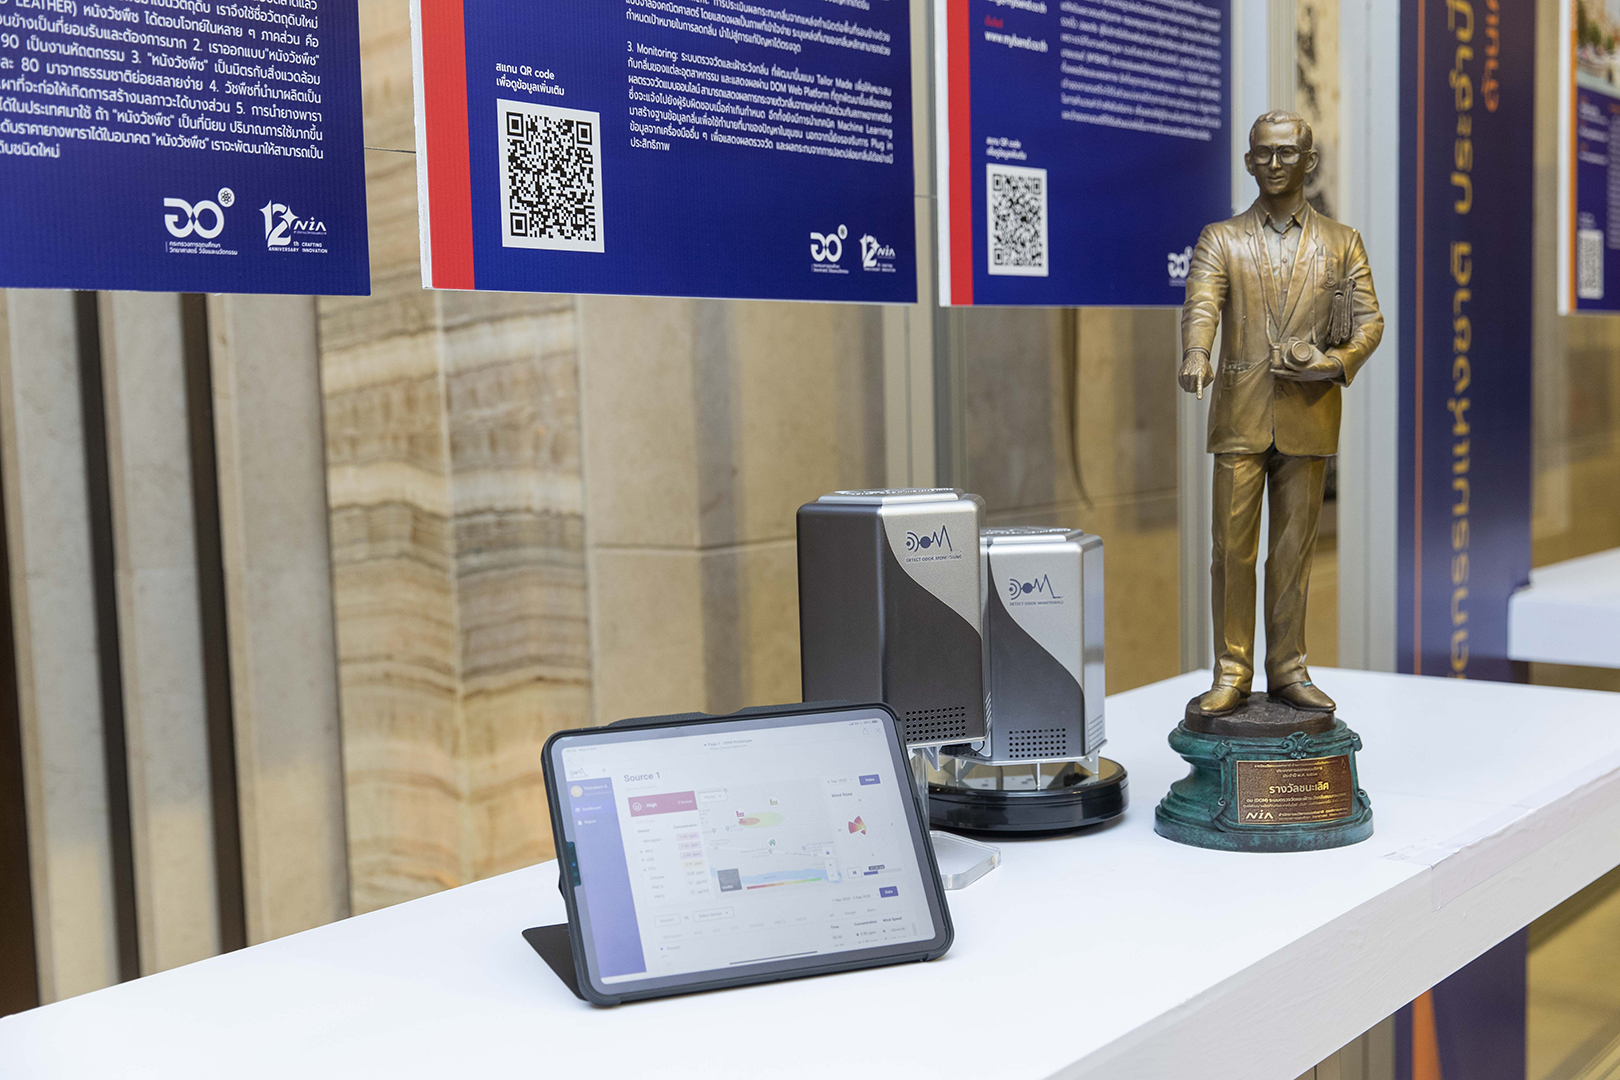 SCGP wins National Innovation Awards 2020 in category of Product and Service Design from Detect Odor & Monitoring (DOM)